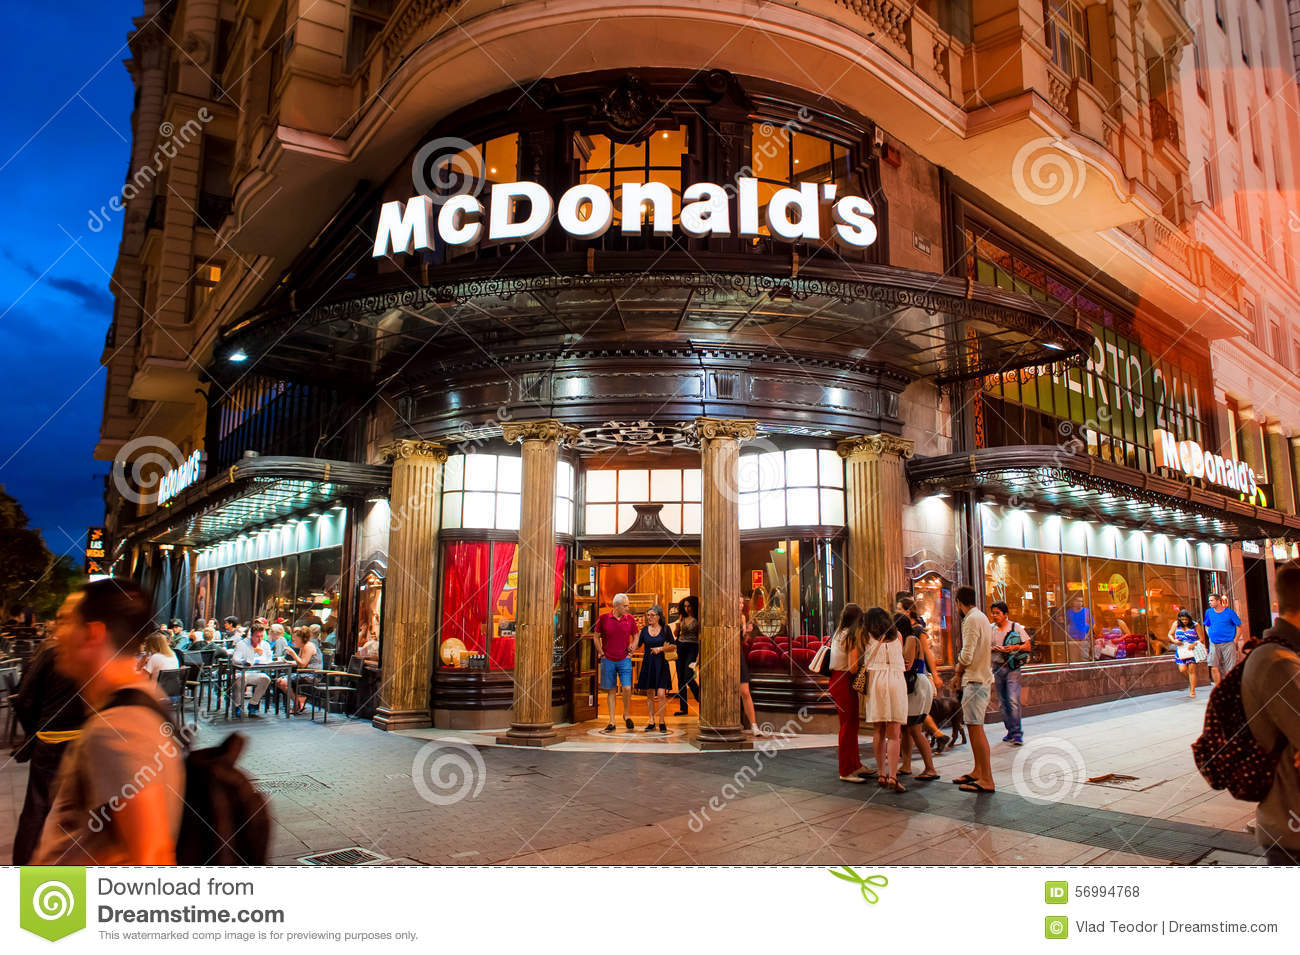 Madrid spanje 23 juni 2015 madrid spanje redactionele for Oficinas mcdonalds madrid